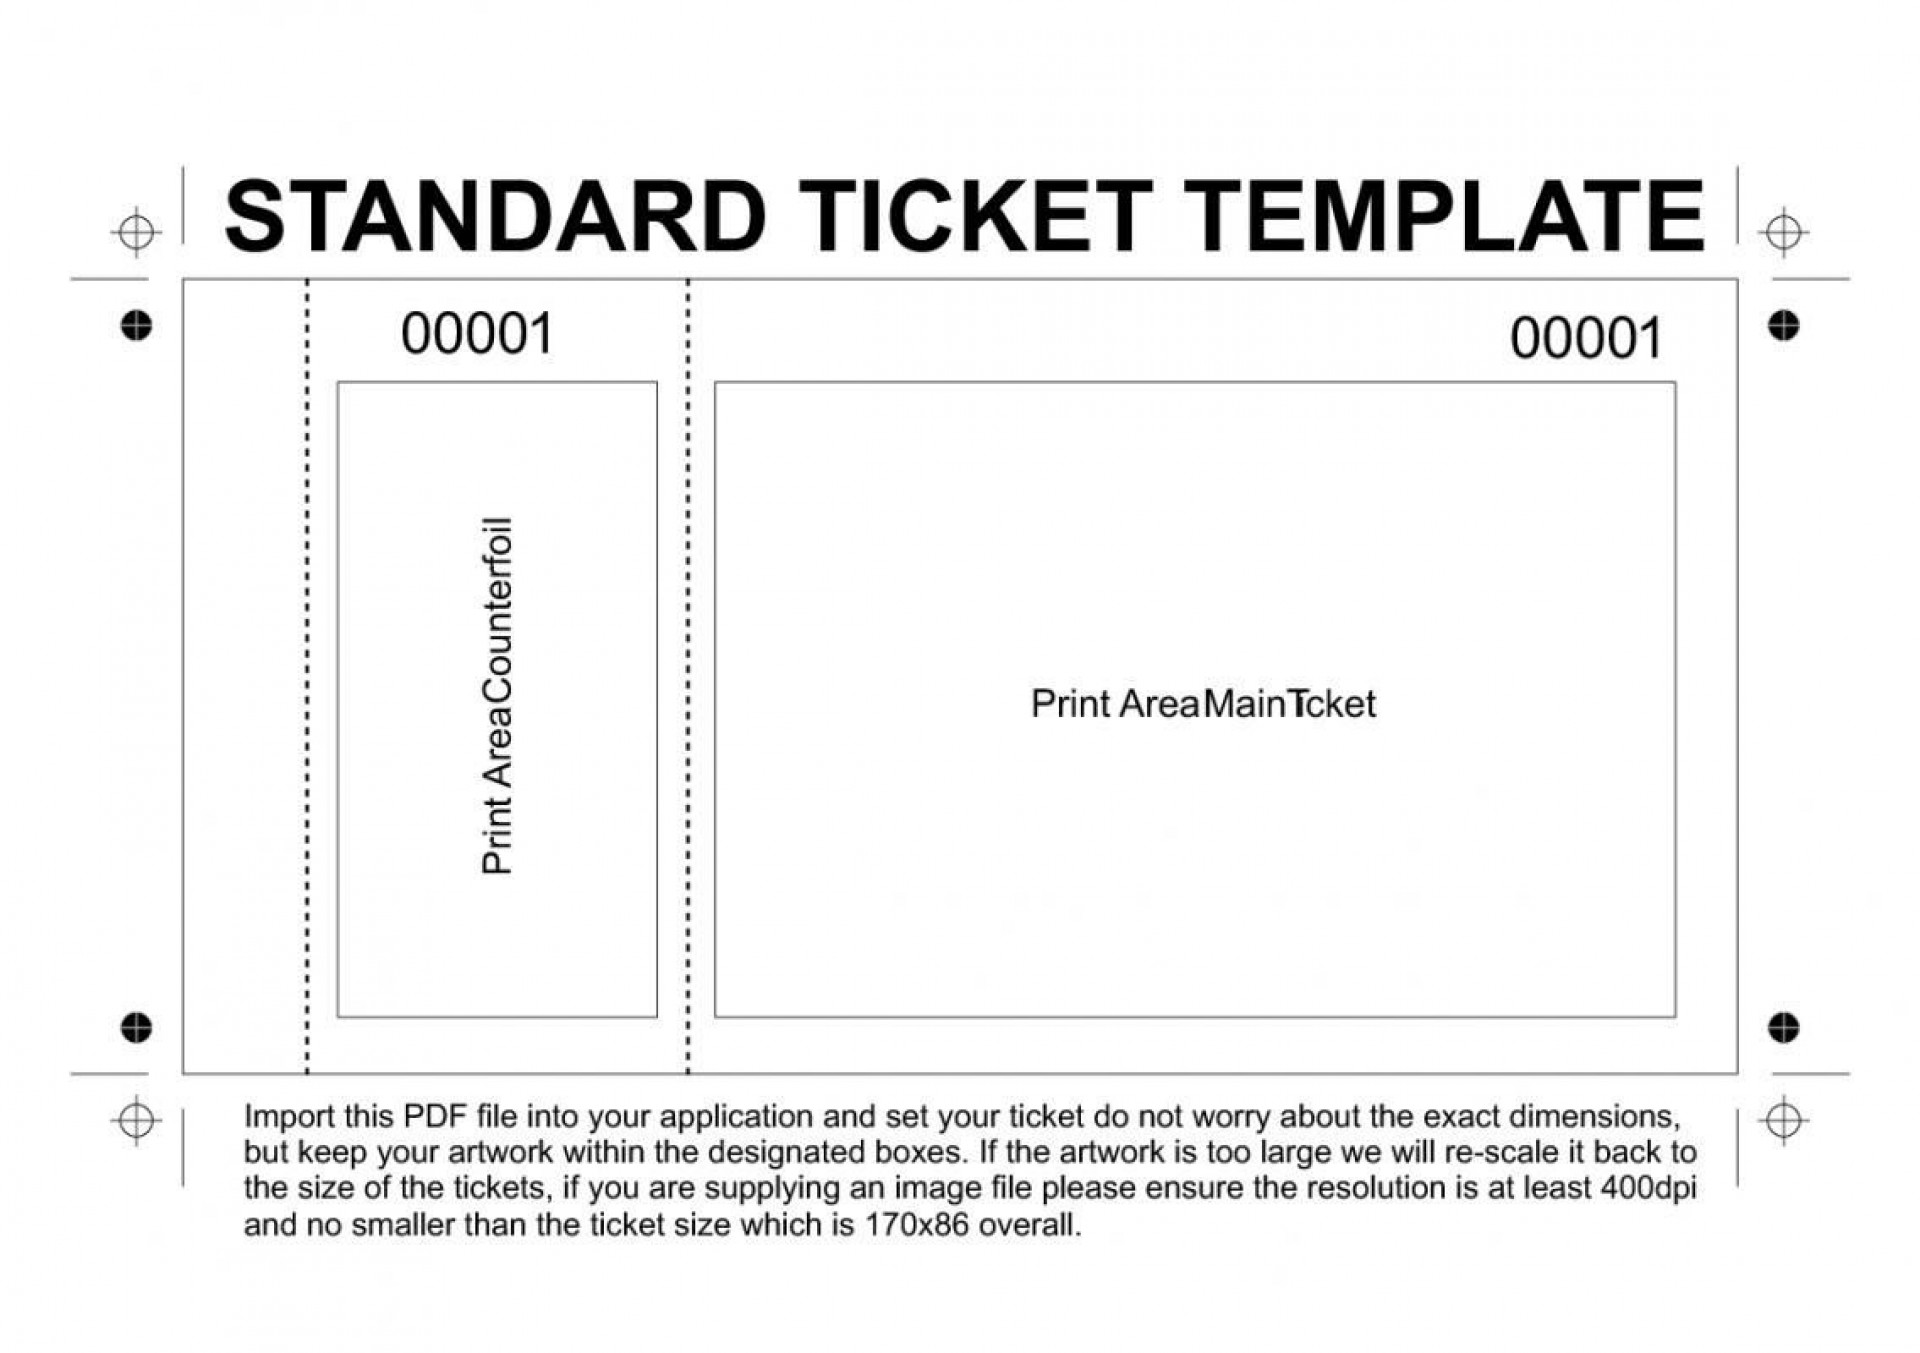 004 Imposing Print Ticket Free Template Sample  Your Own1920